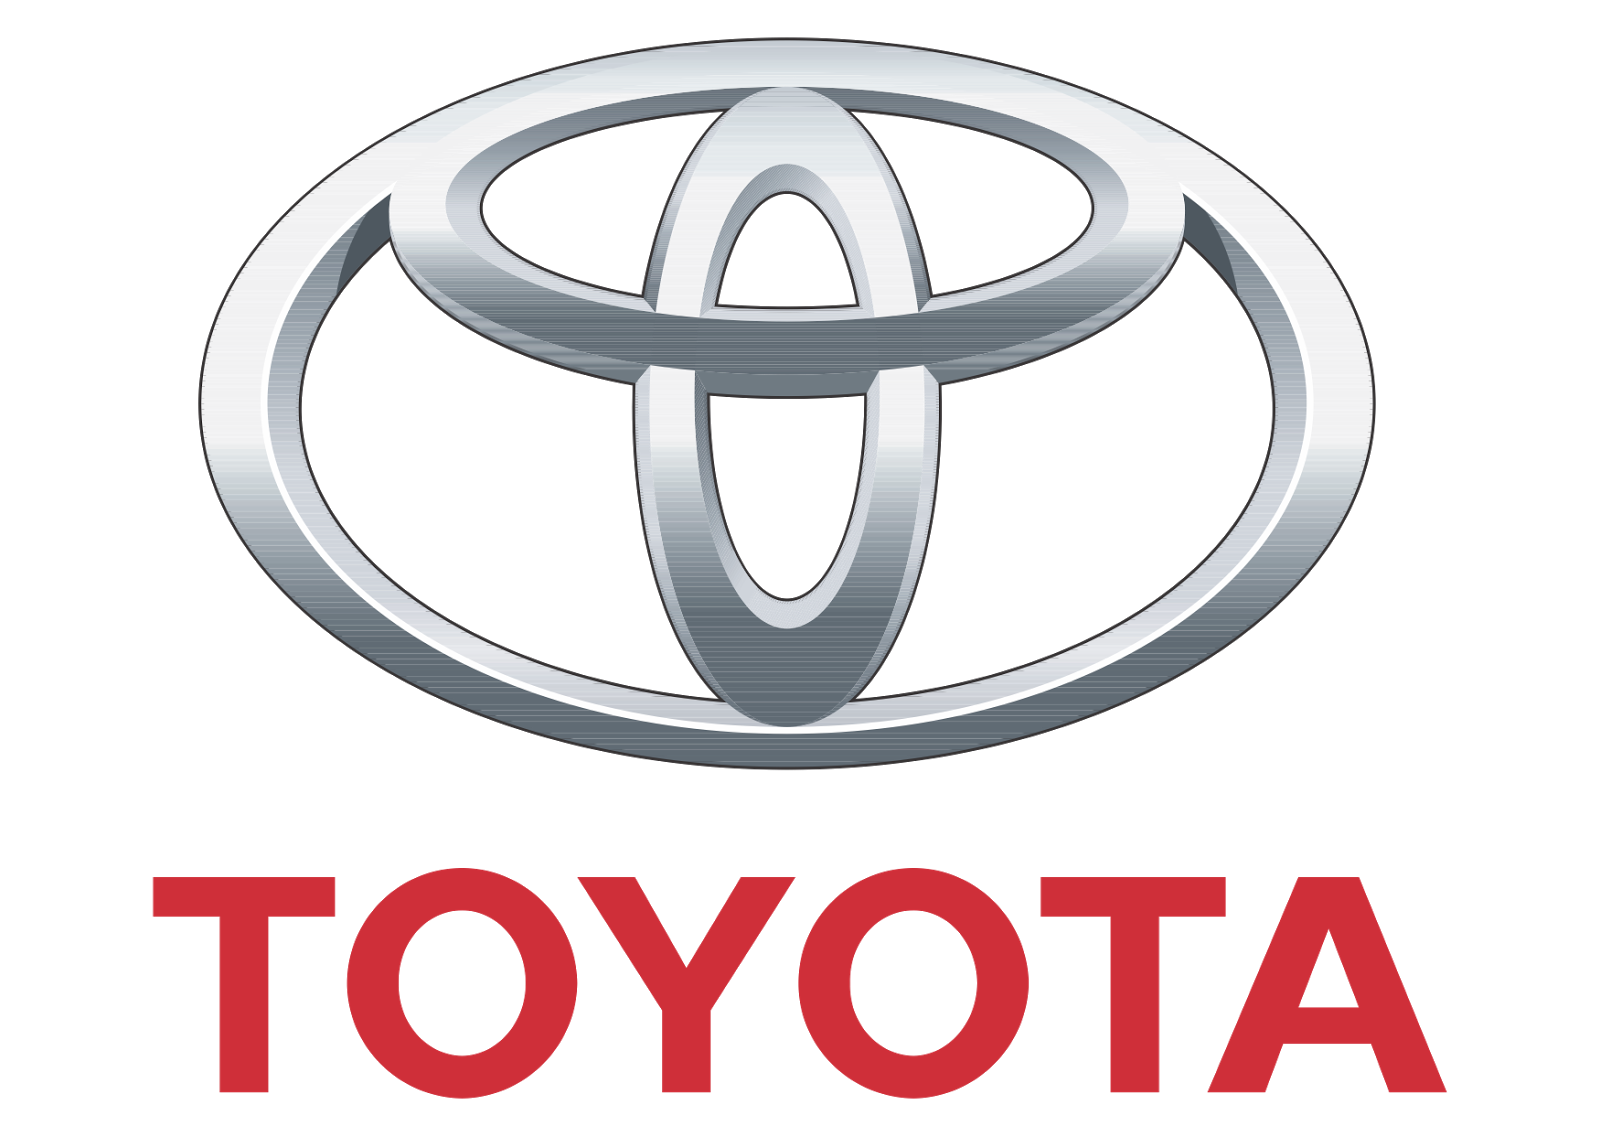 Toyota Logo Free Download Png Png Image - Toyota Vector, Transparent background PNG HD thumbnail